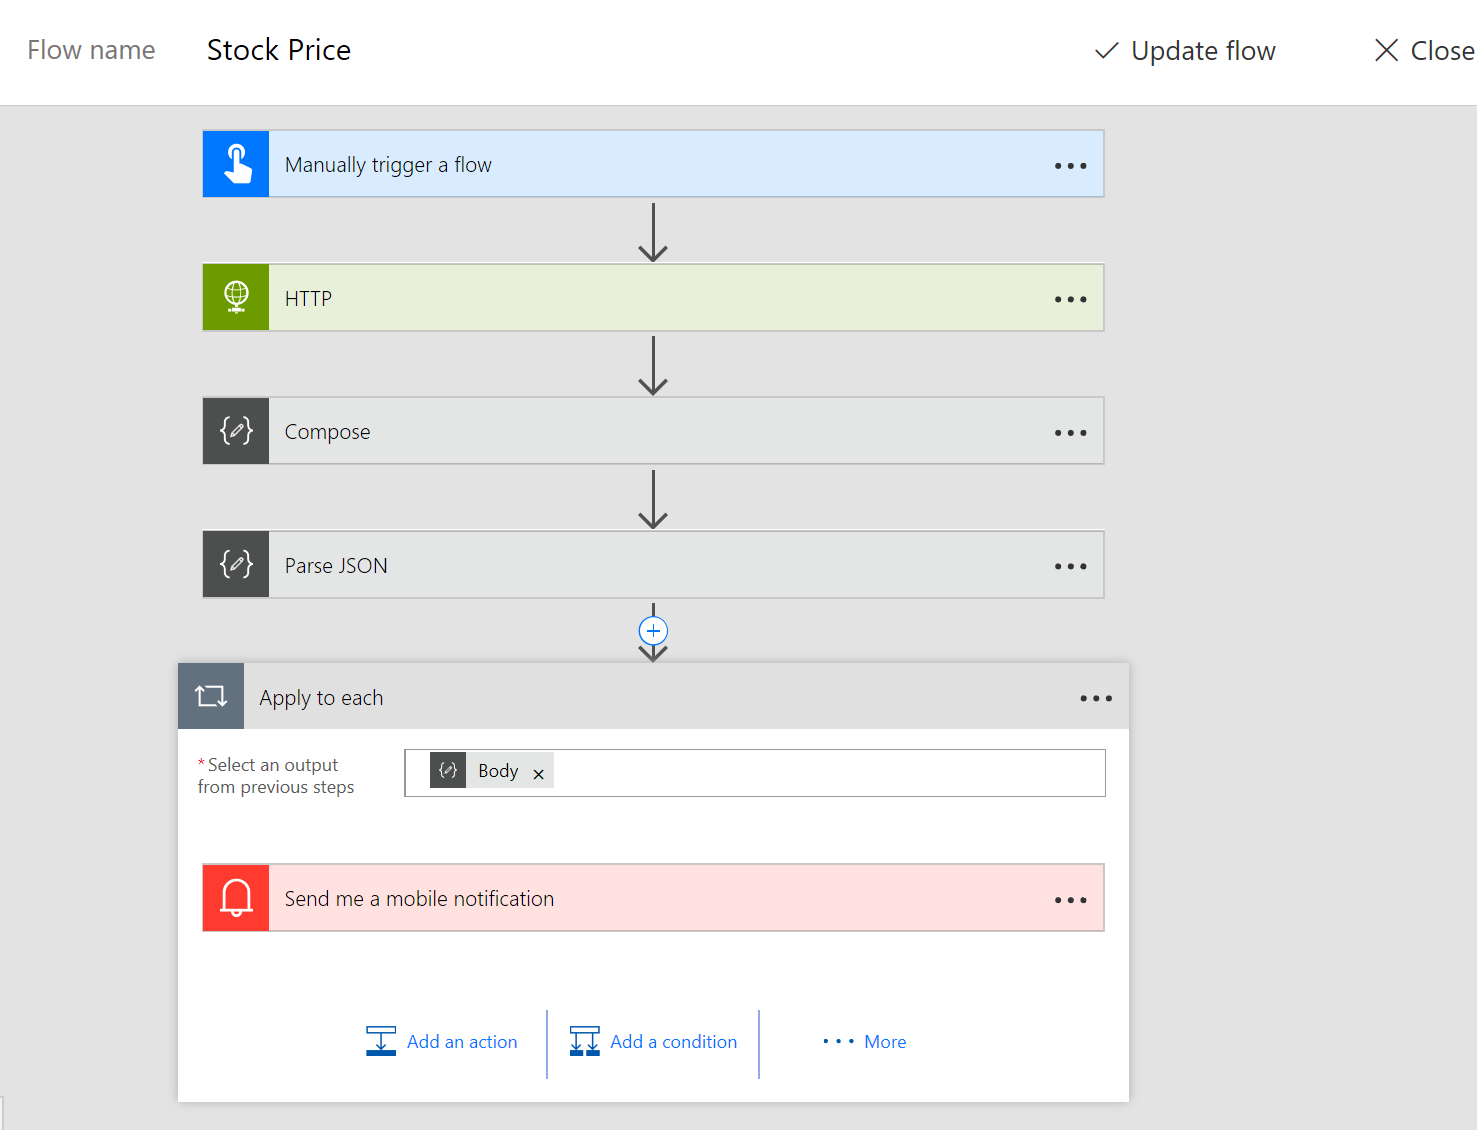 SharePointBlue - Yet Another SharePoint Blog: Microsoft Flow - HTTP ...